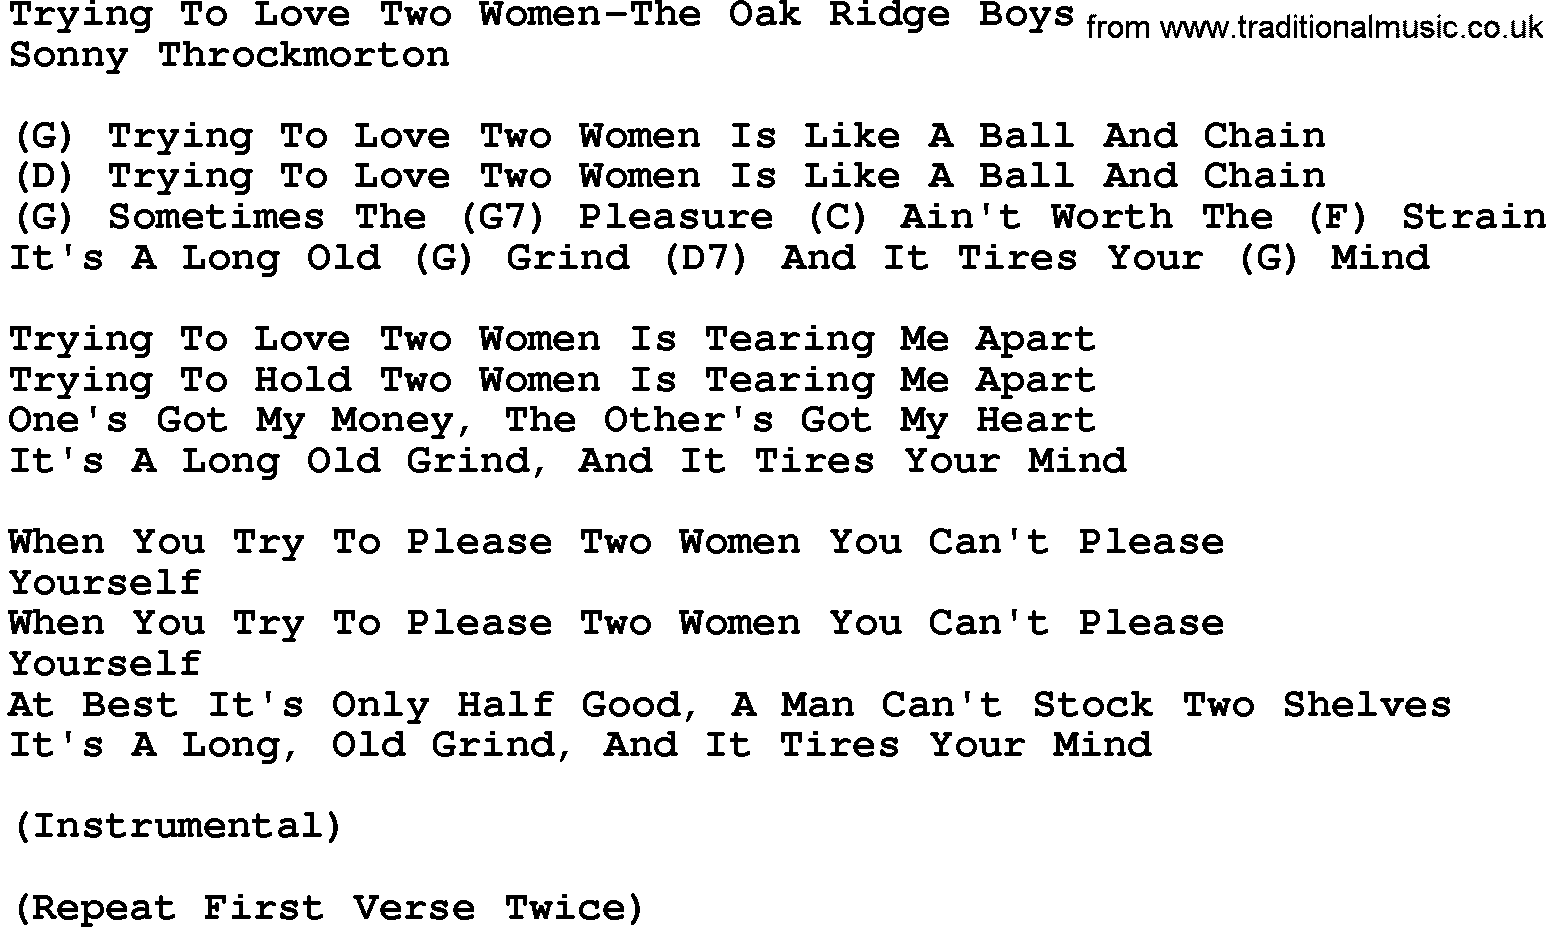 Songs about loving two women